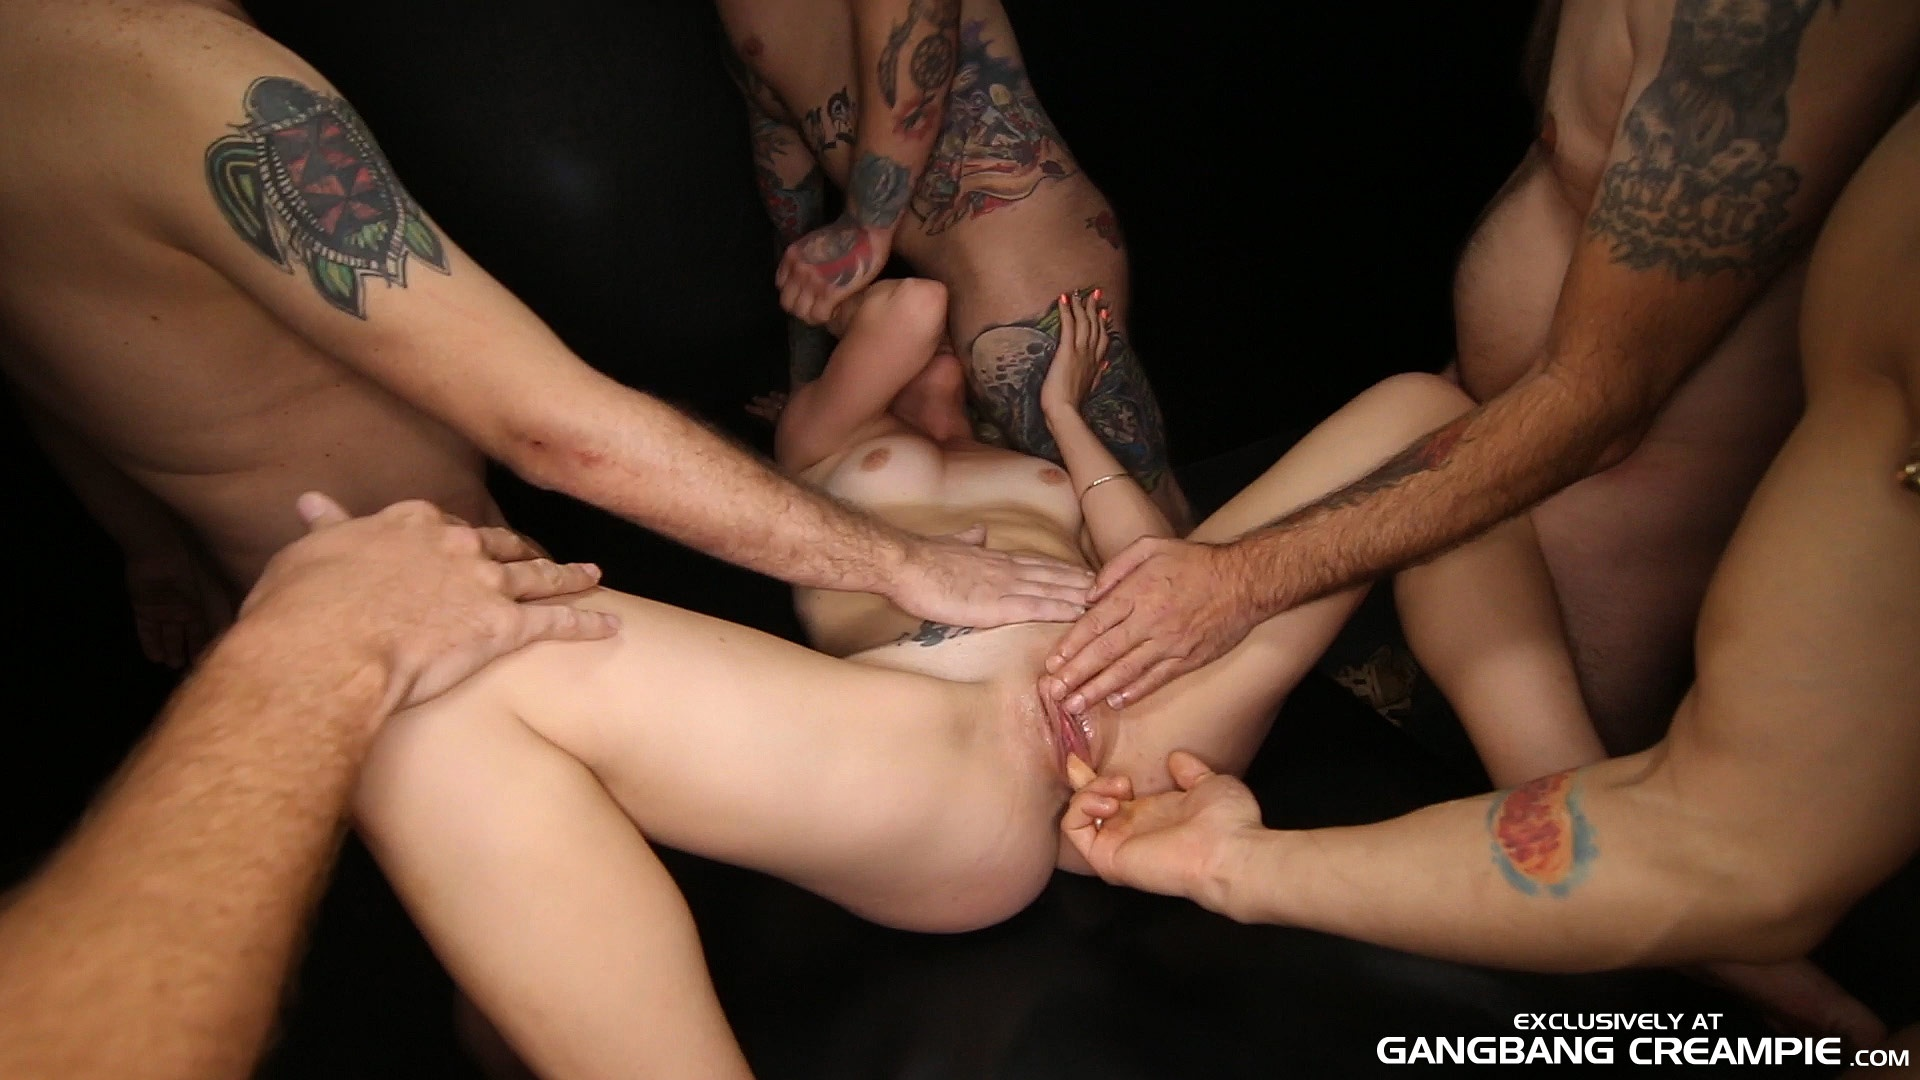 Gangbang jizz creampie tube perfect ass!